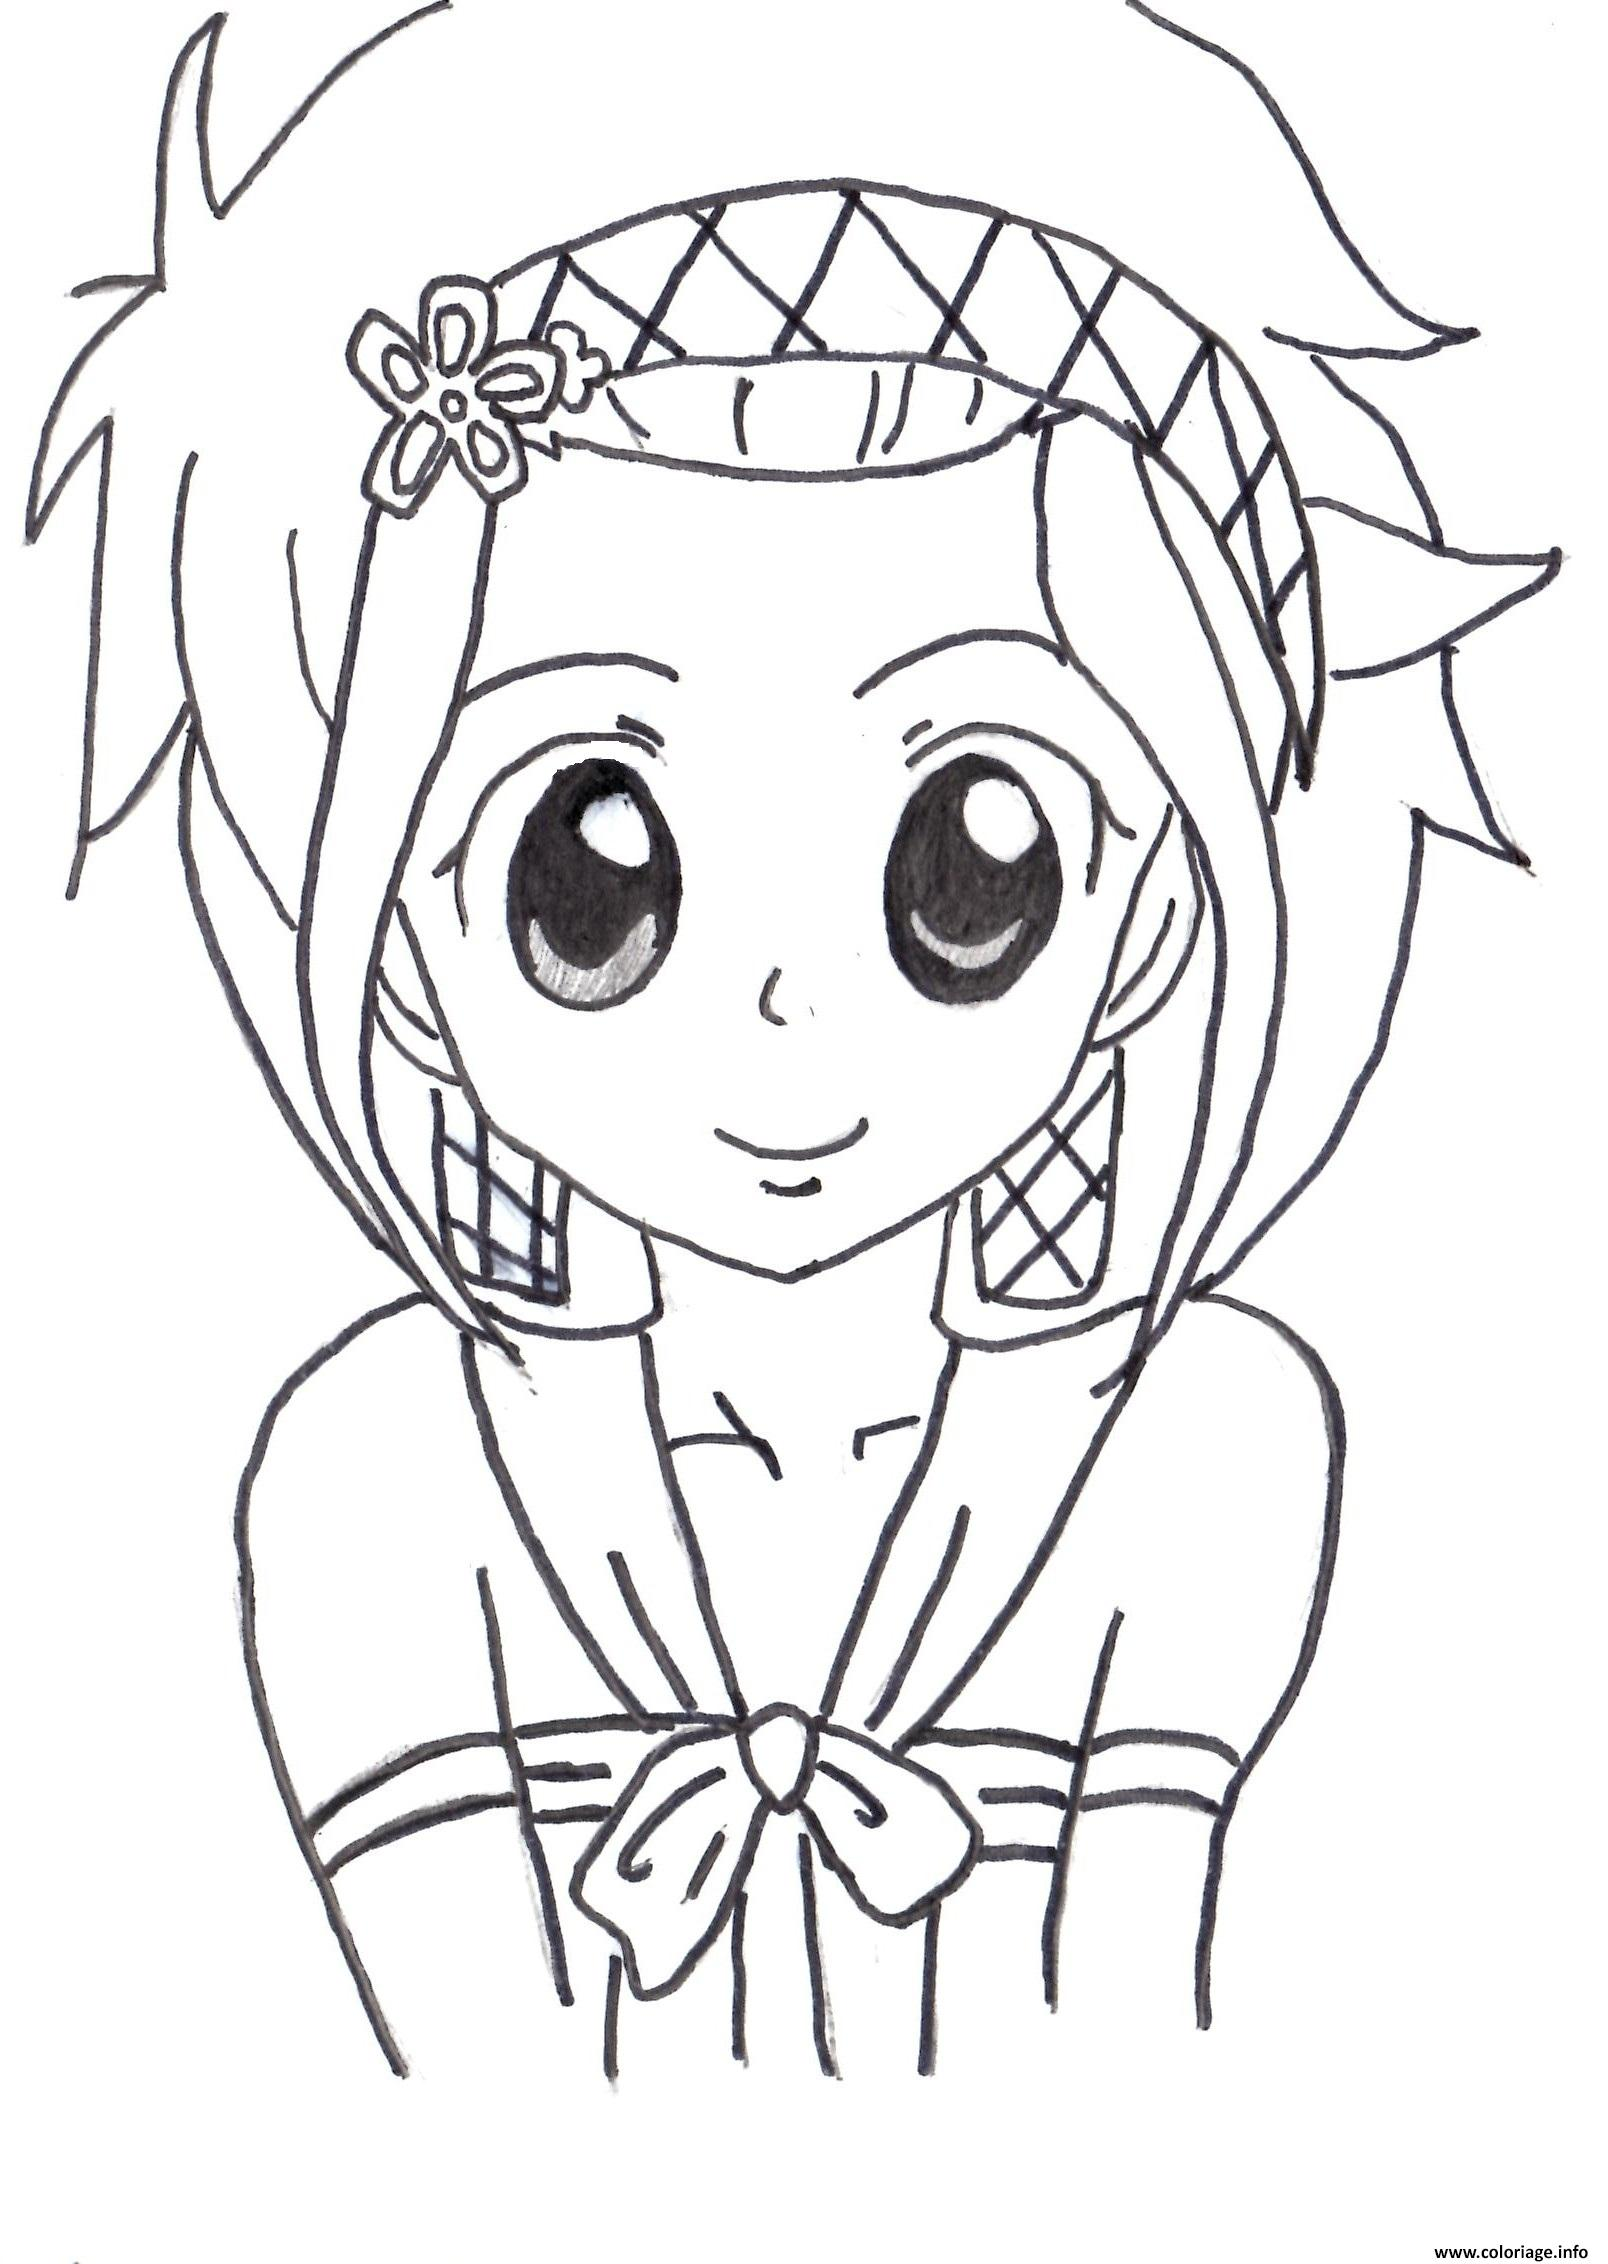 Coloriage cute levy mcgarden fairy tail - Dessin anime de fairy tail ...